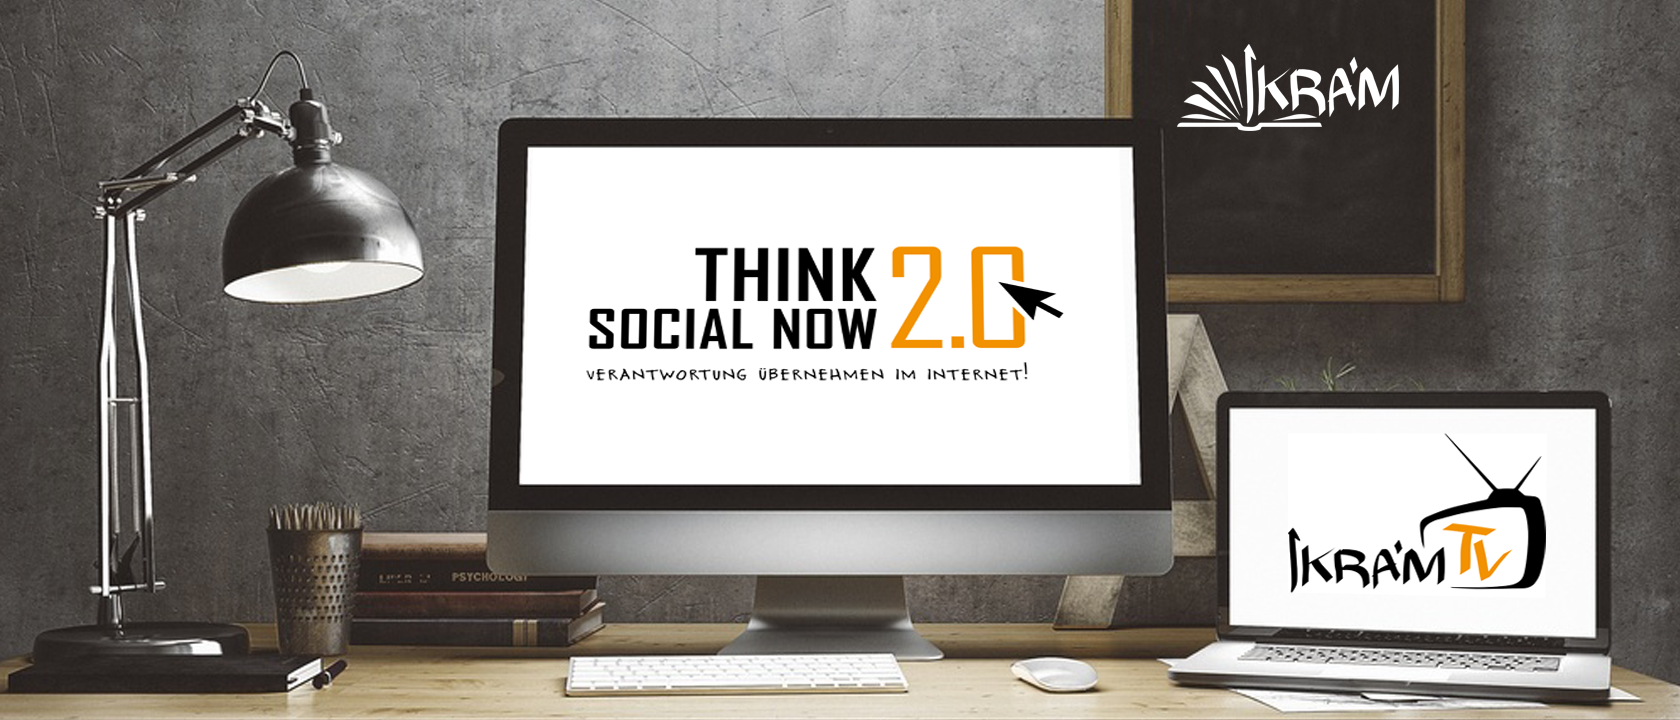 Permalink zu:Was ist Think Social Now 2.0